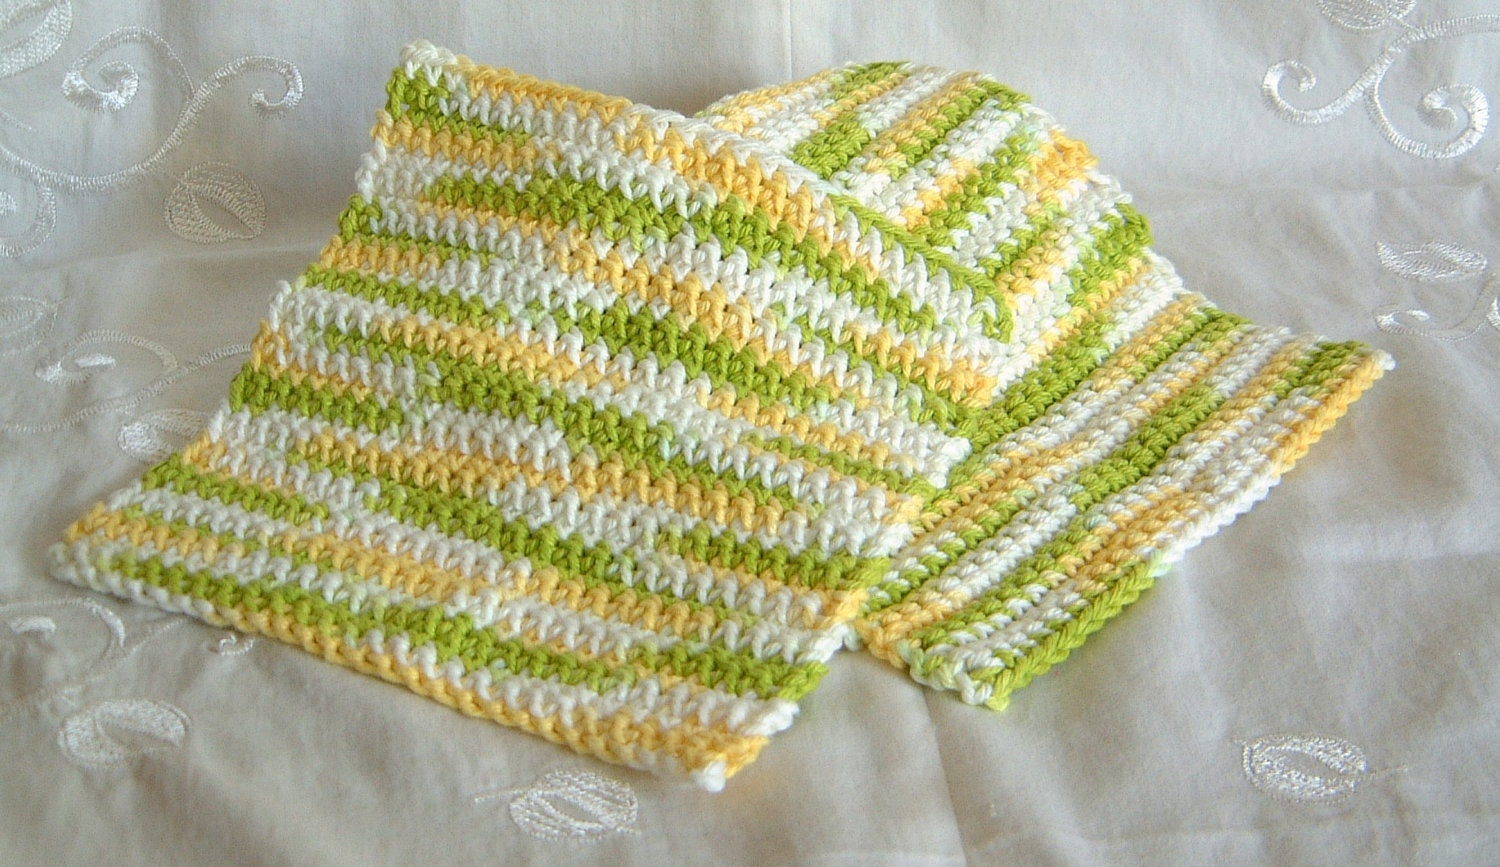 Yellow, Green, and White Cotton Crochet Wash or Dish Cloths